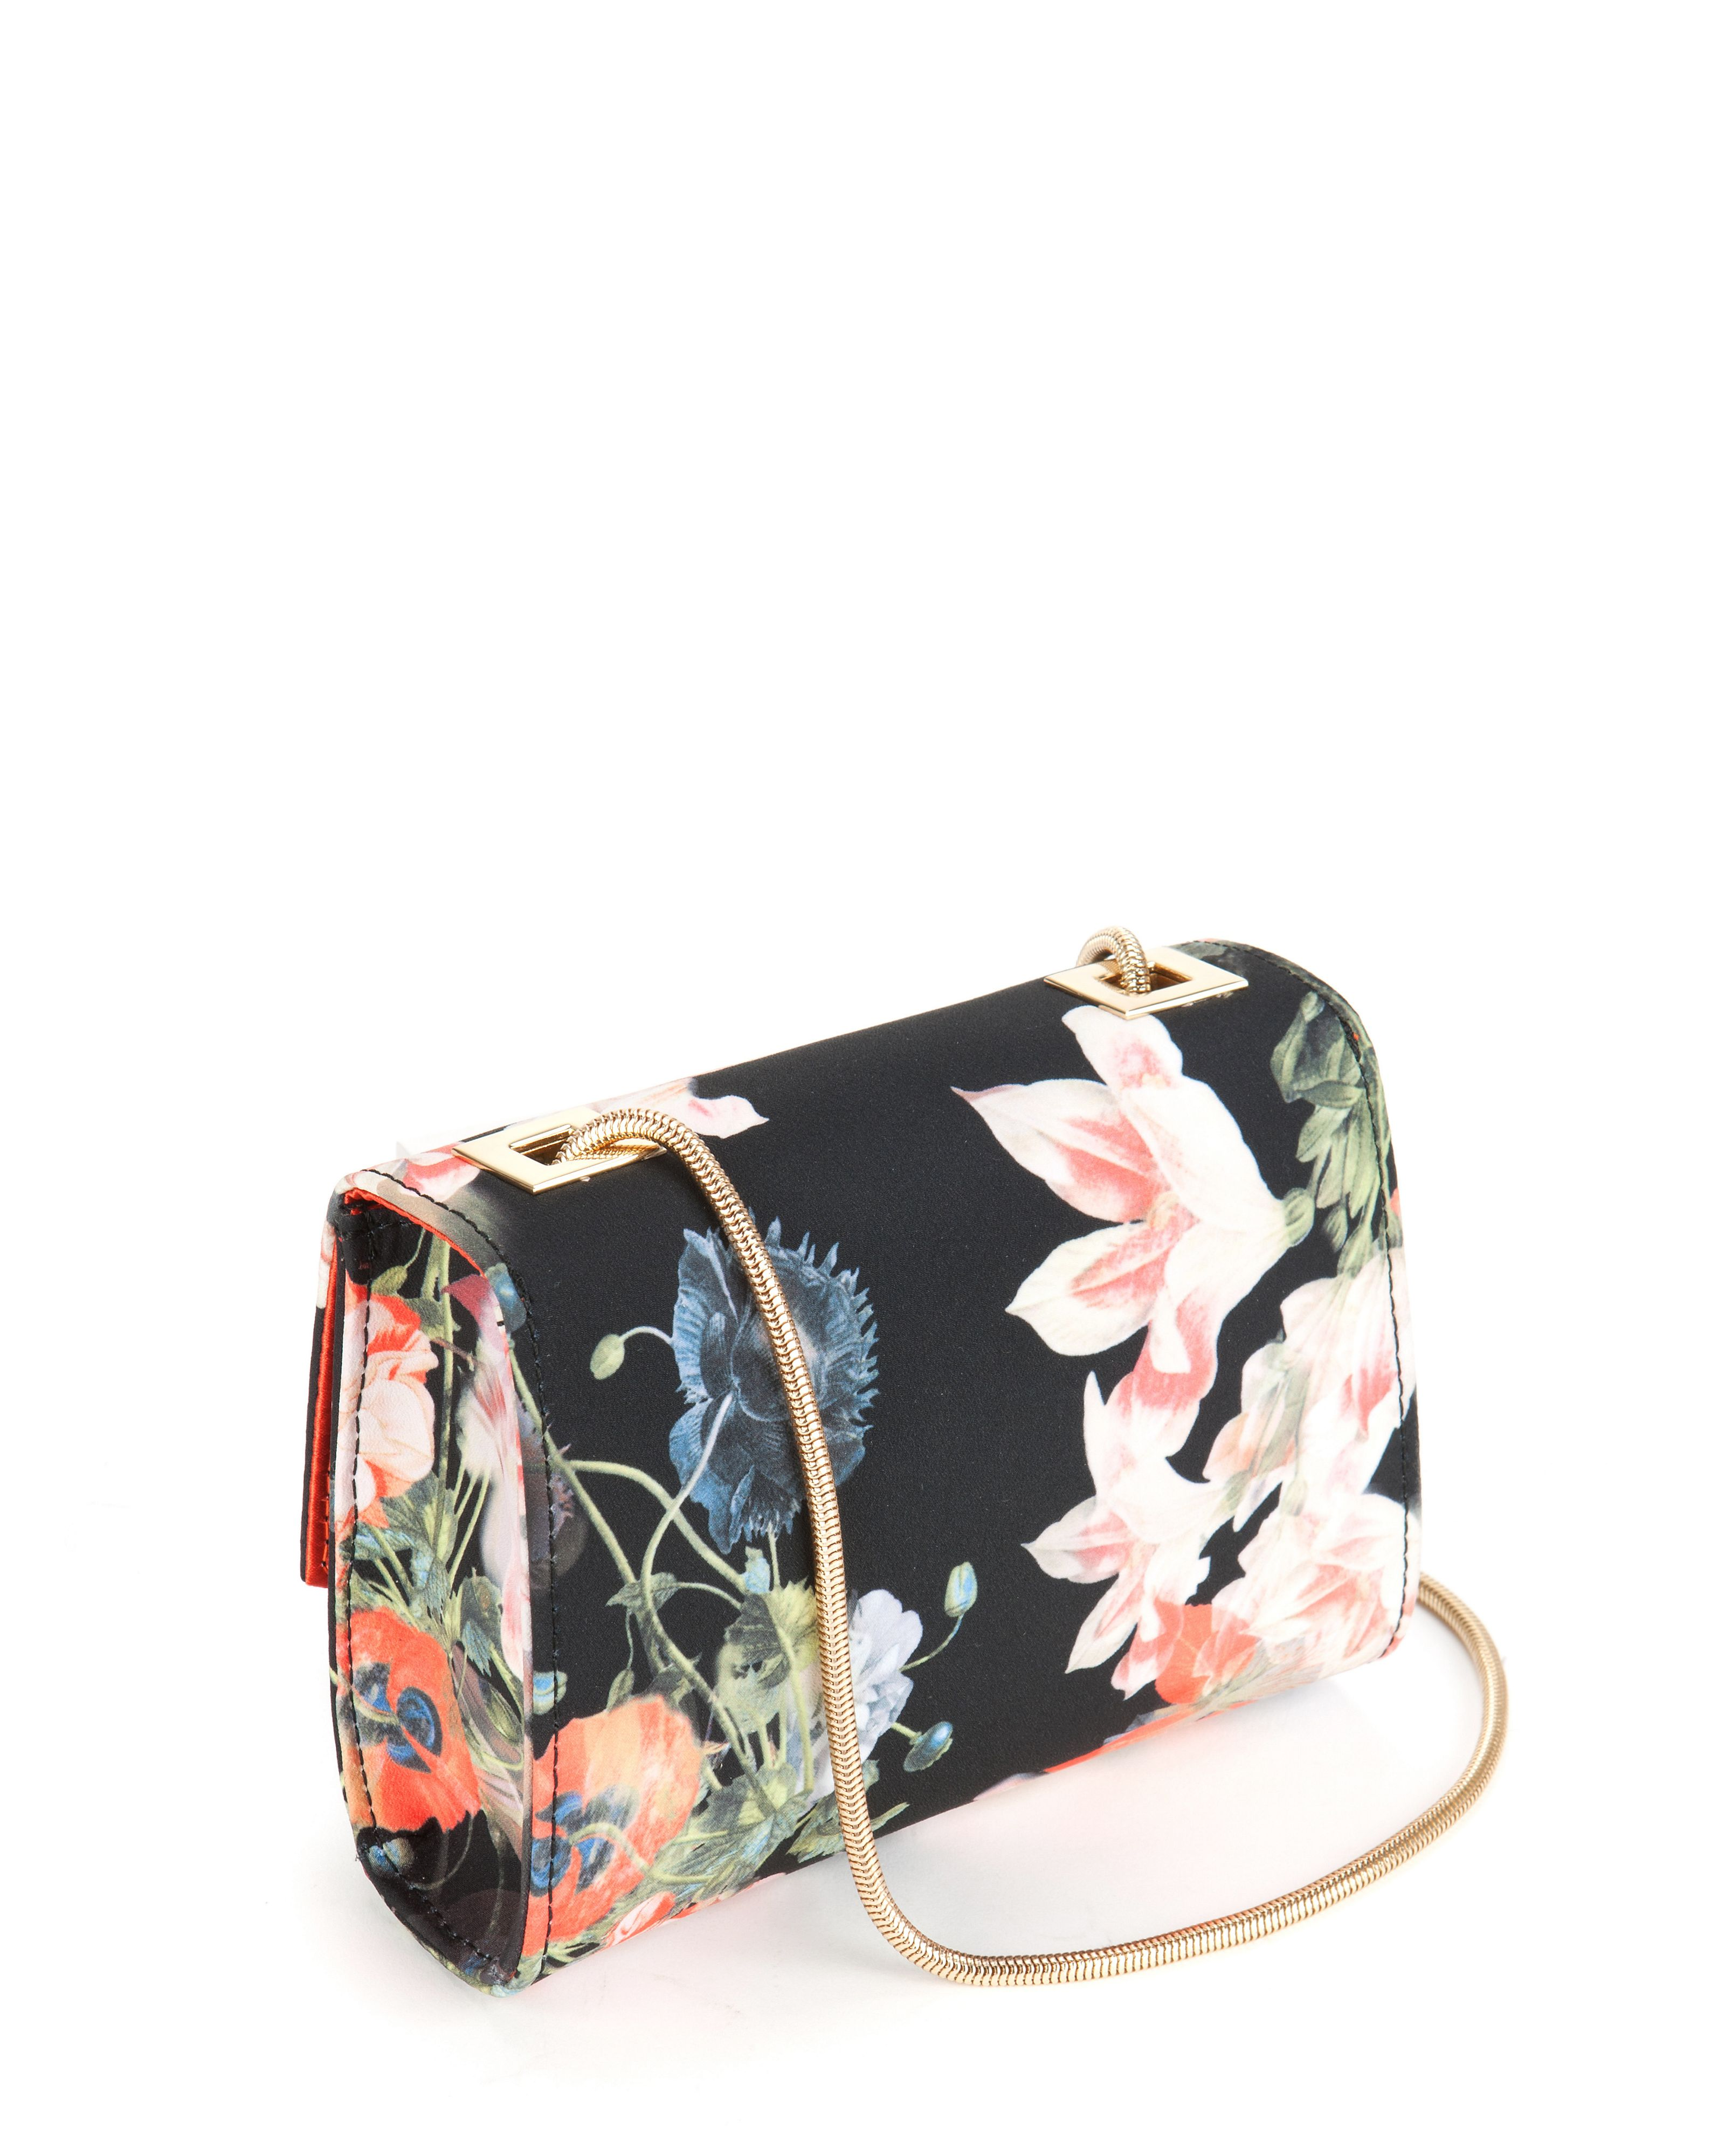 Keira opulent bloom clasp clutch